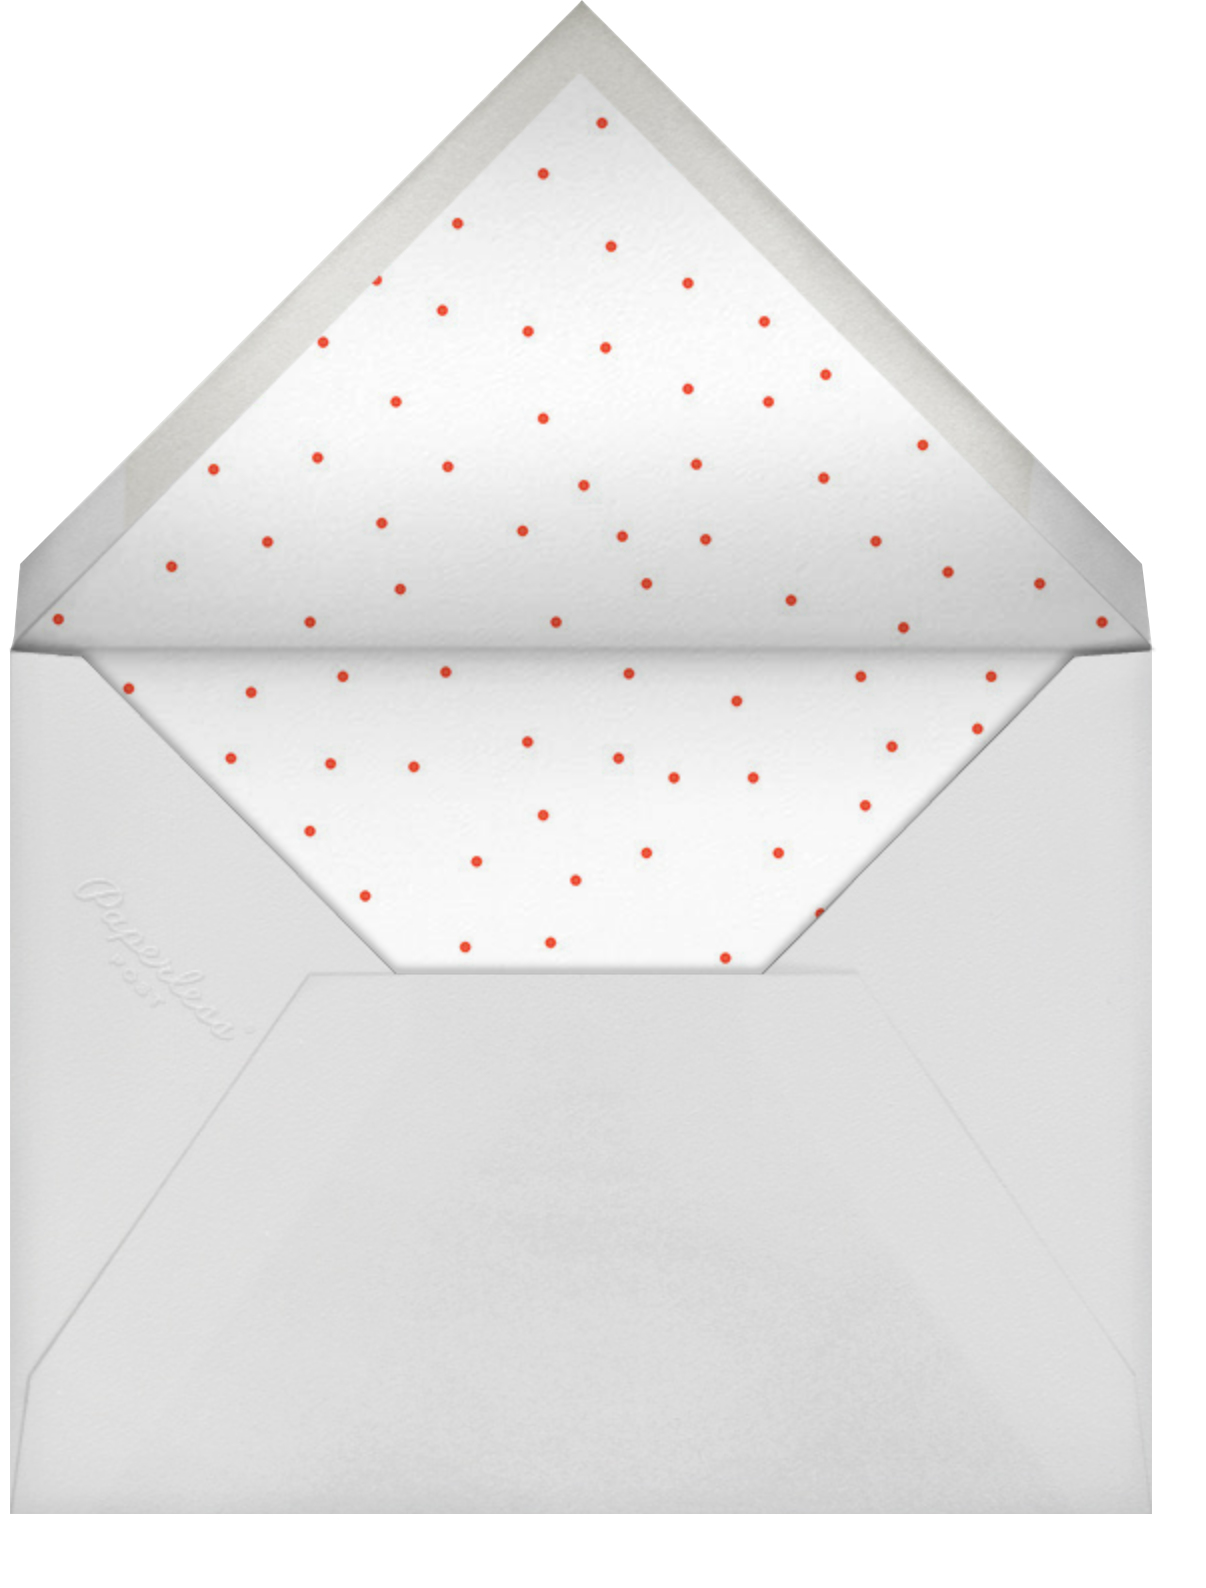 Caps Wrap - Cheree Berry Paper & Design - Holiday cards - envelope back